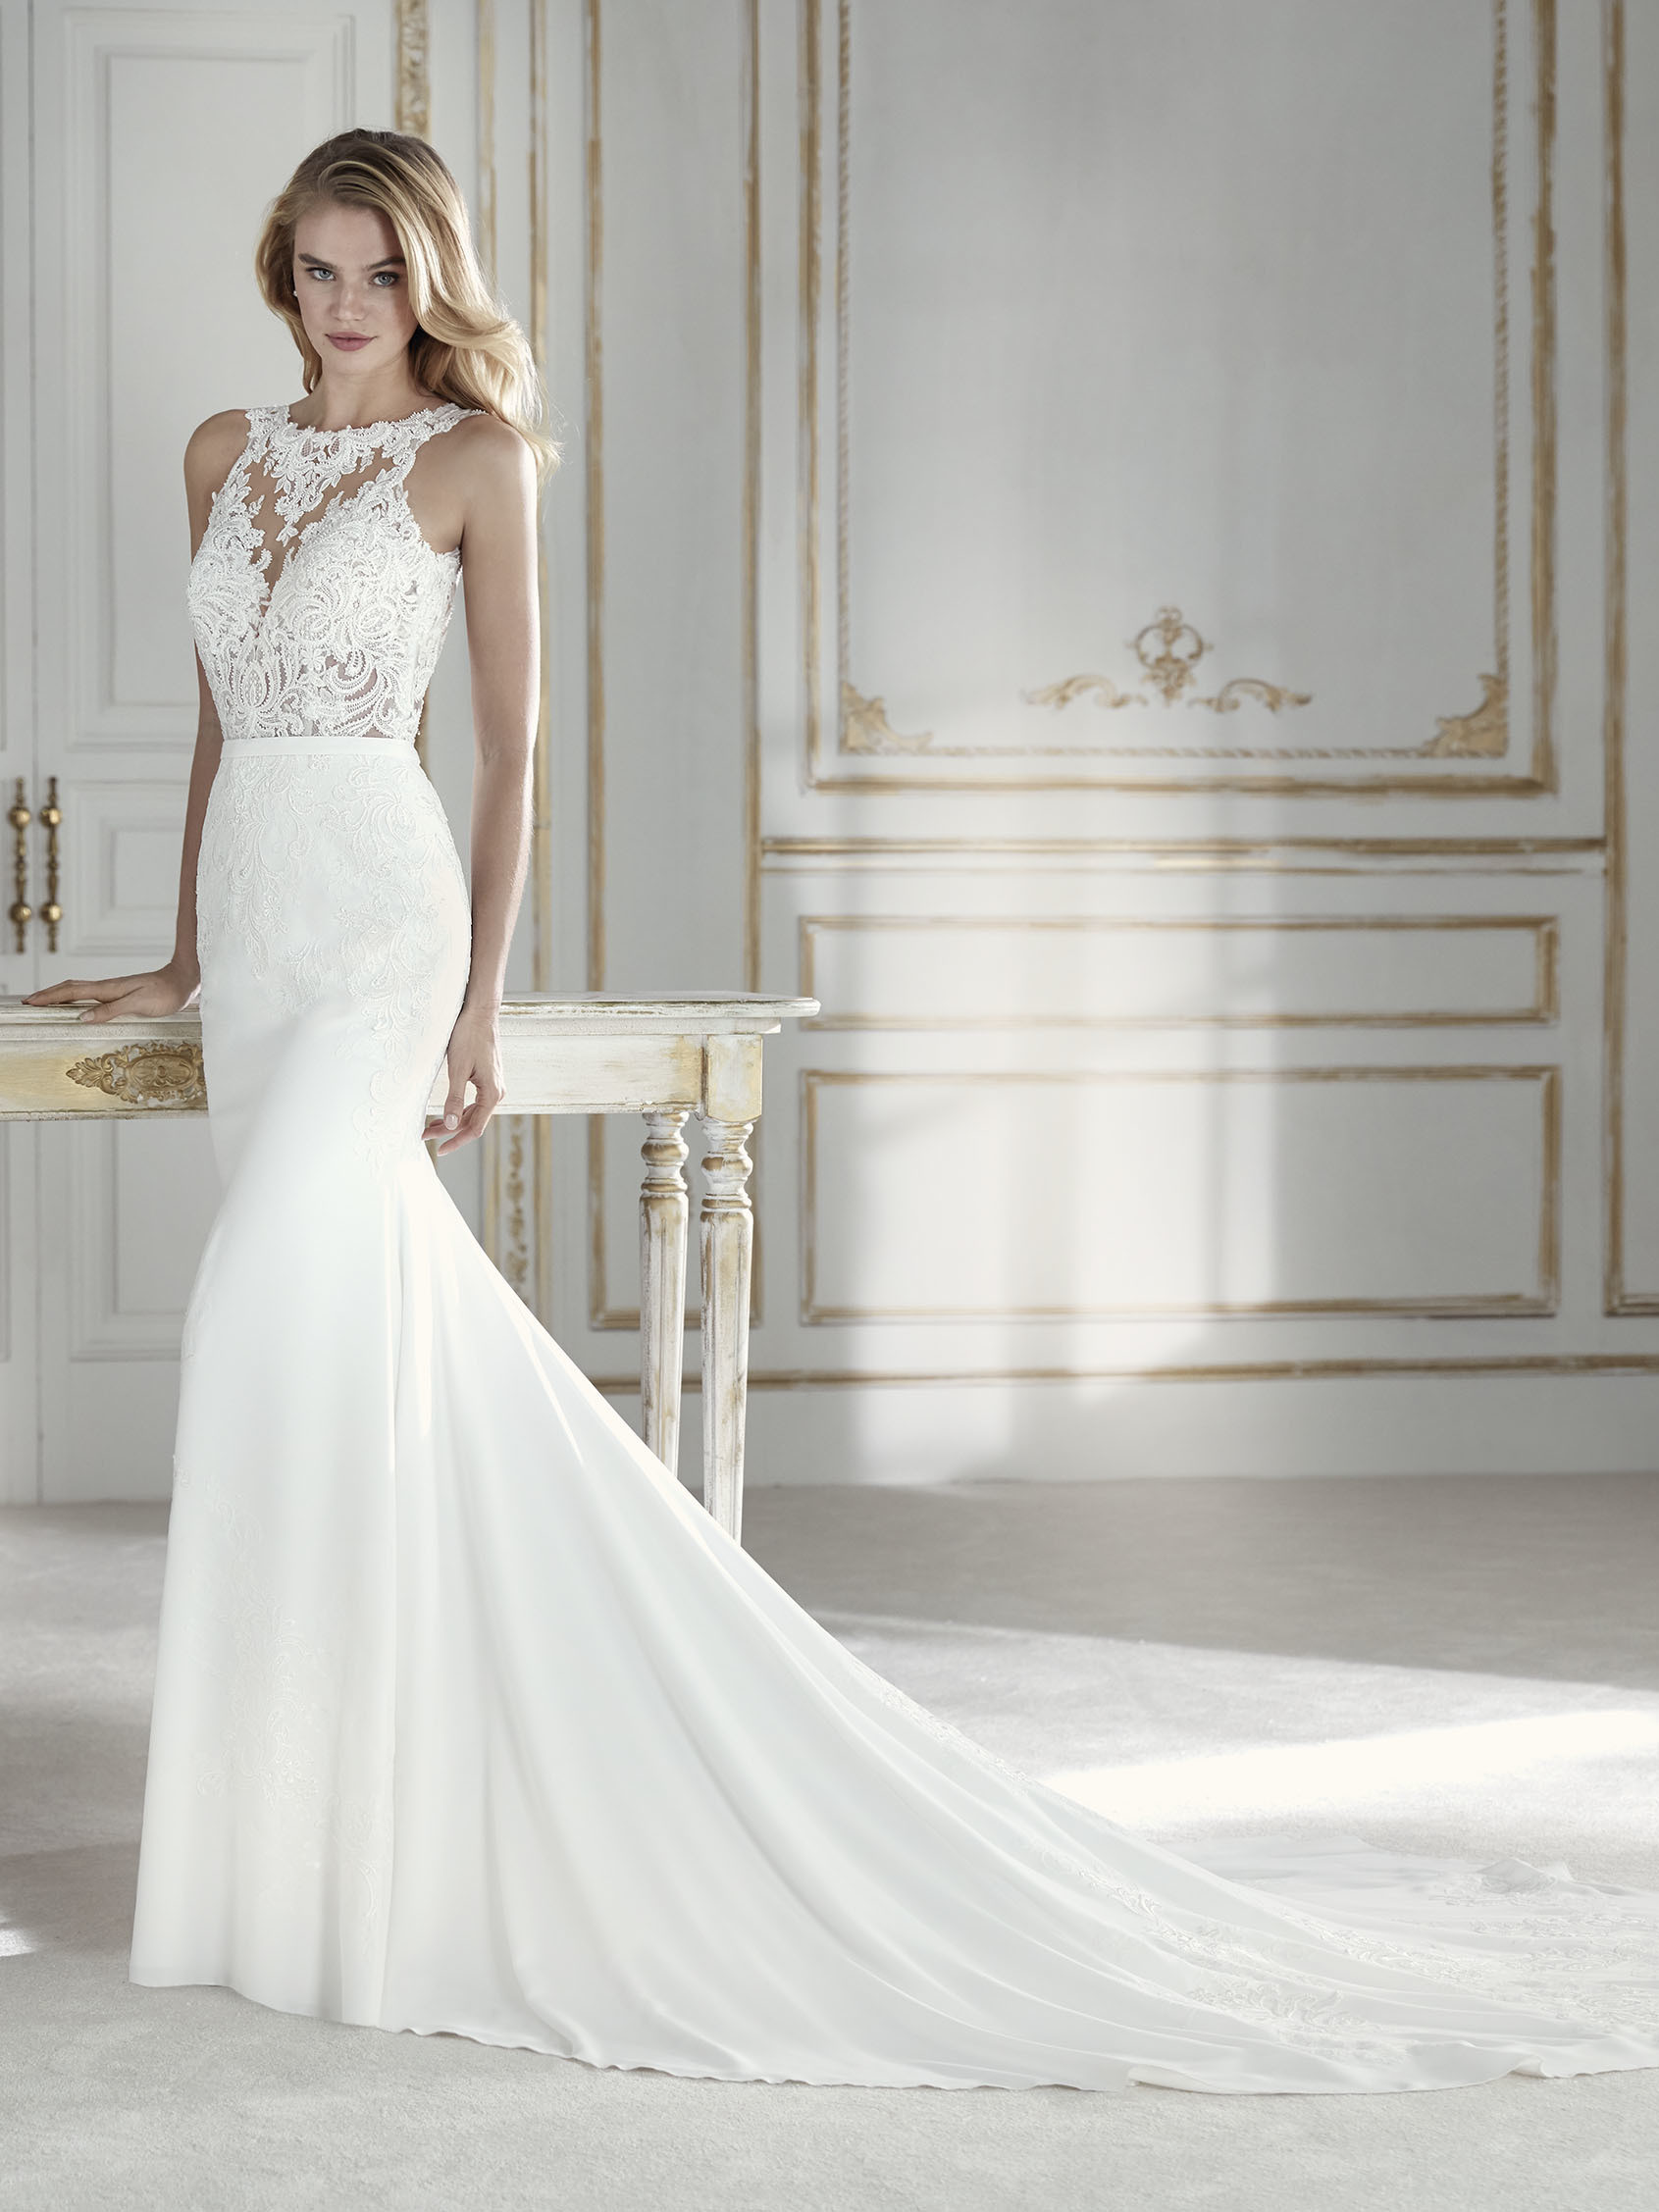 5beb007c1b57 Elegant mermaid wedding dress in which the crepe skirt meets tulle and lace  at the waist to form .